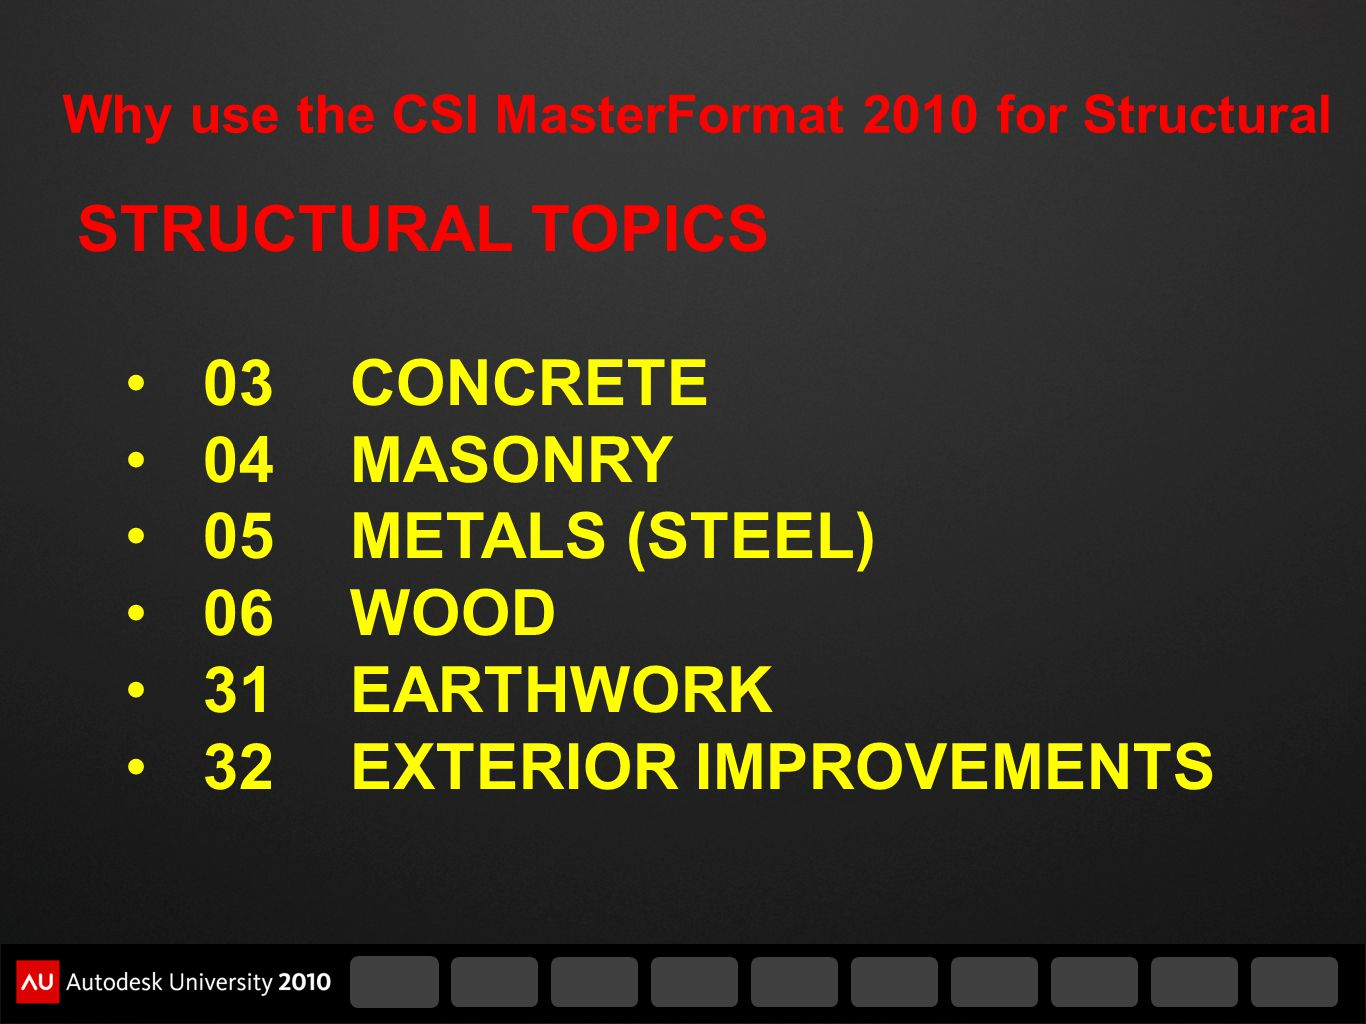 Why use the CSI MasterFormat 2010 for Structural